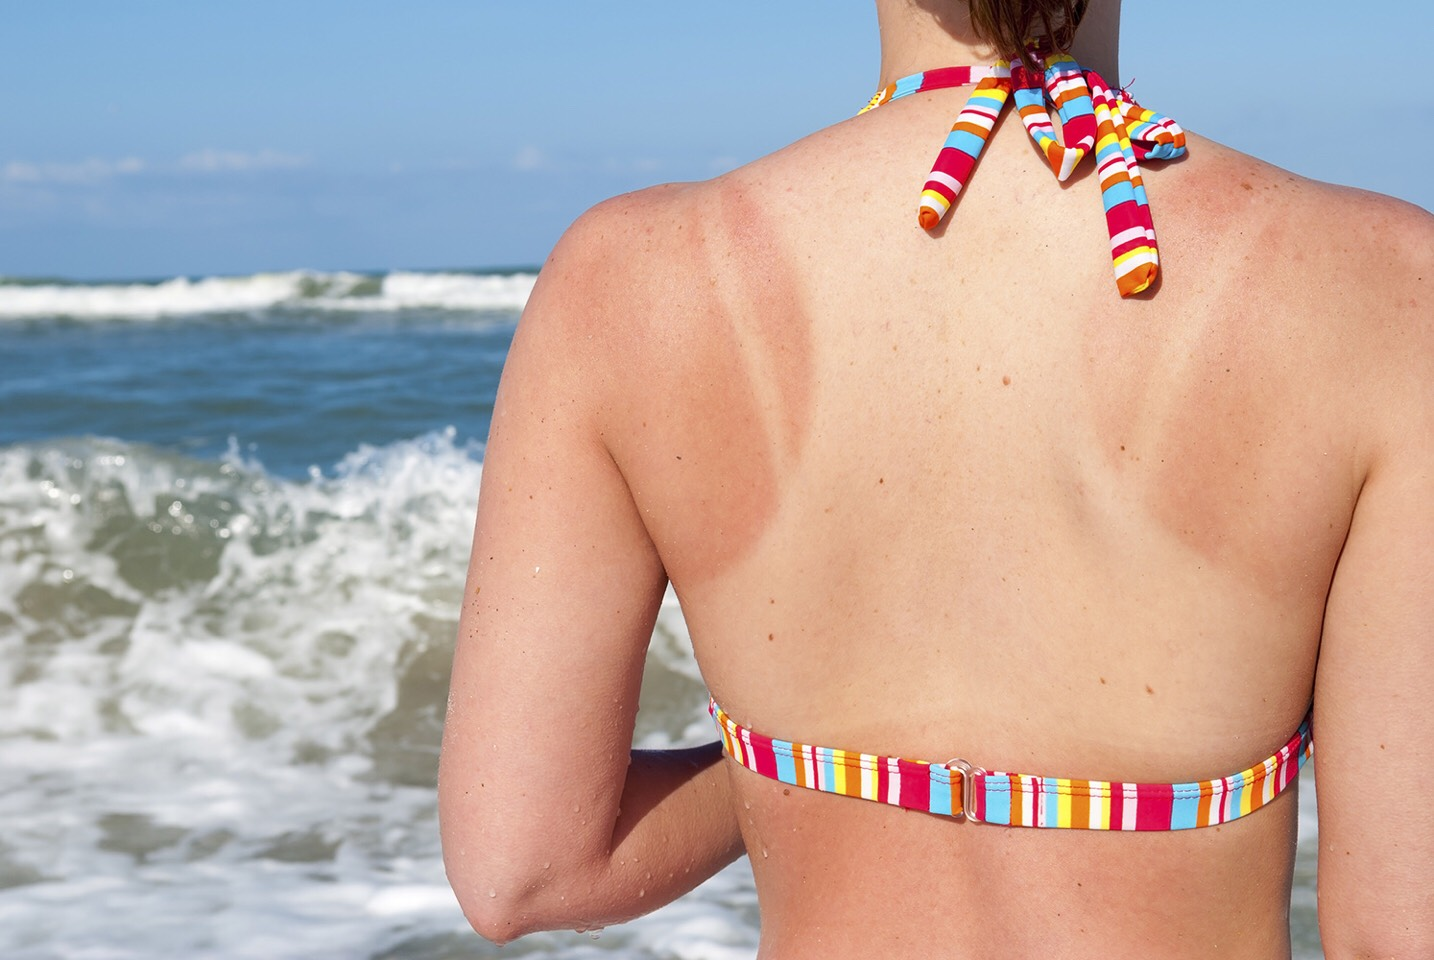 Out of aloe vera? Vaseline helps sooth sunburn